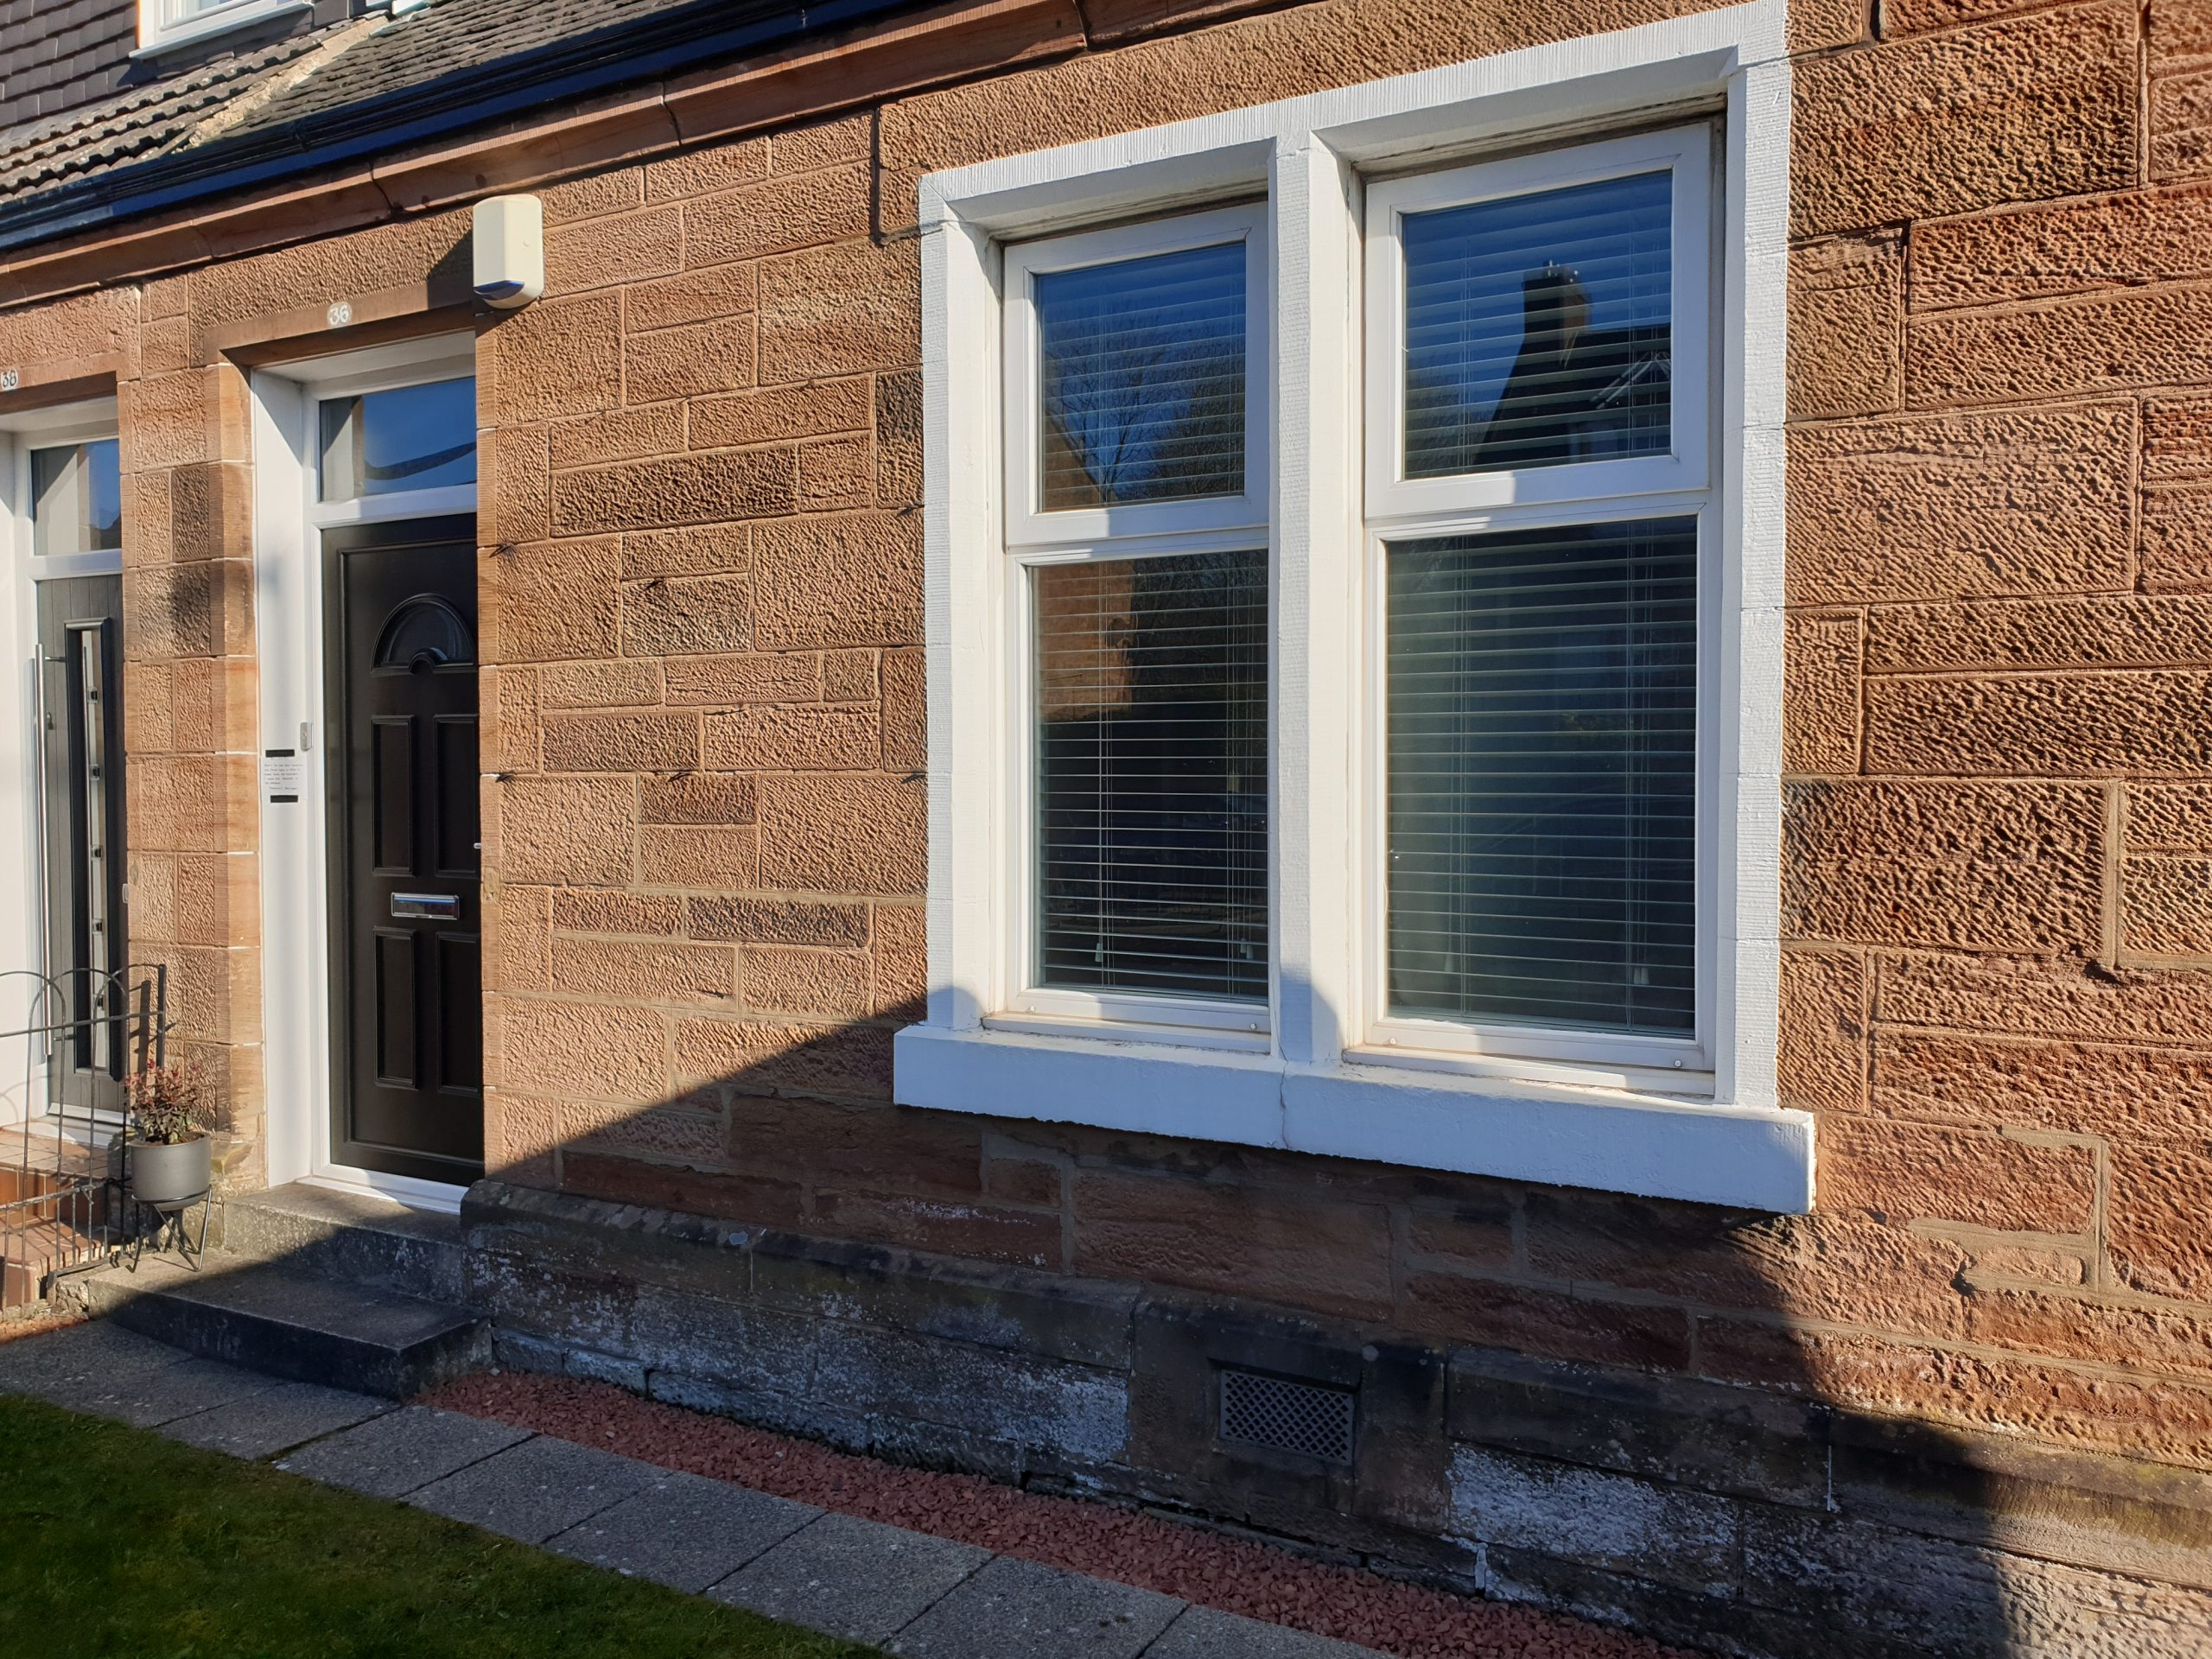 Remove paint from window stonework